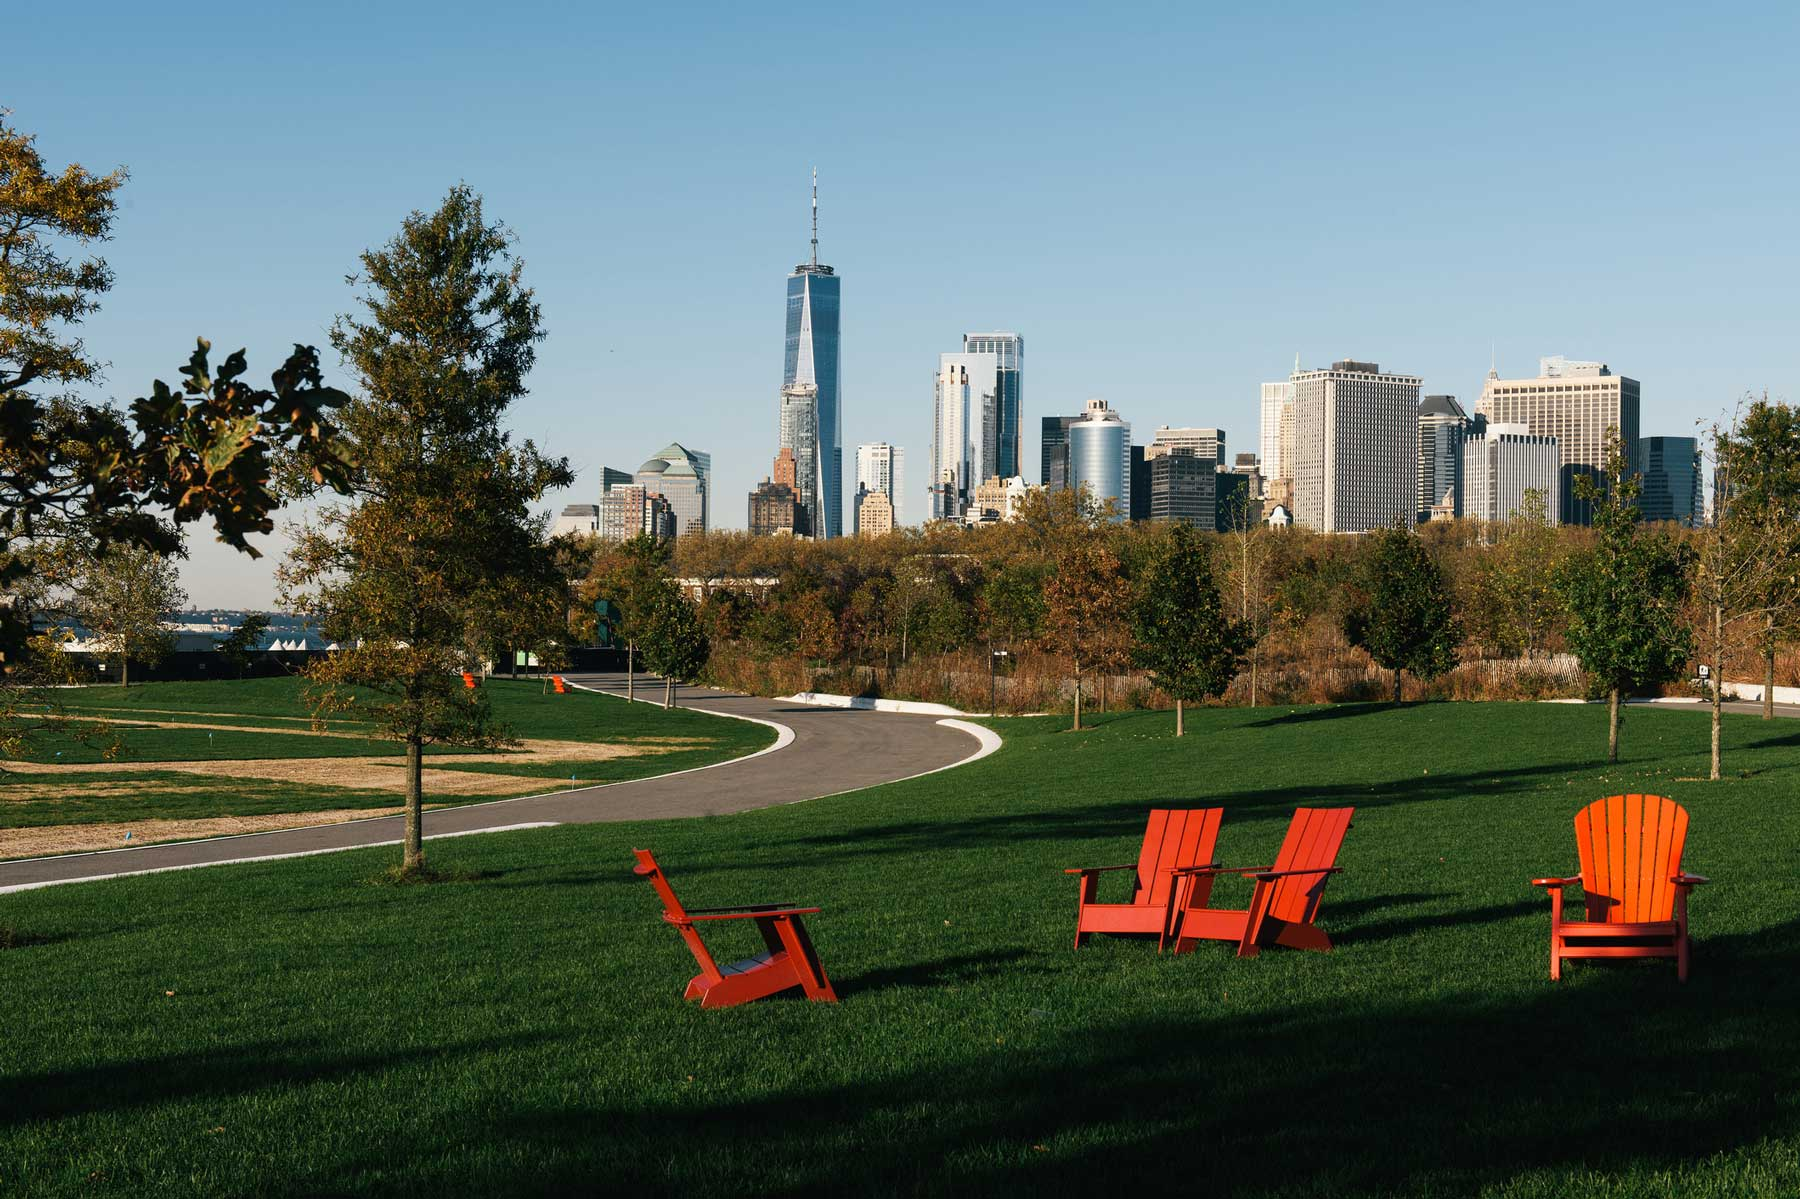 Chaise lounge chairs on the green lawn at Governors Island in NYC